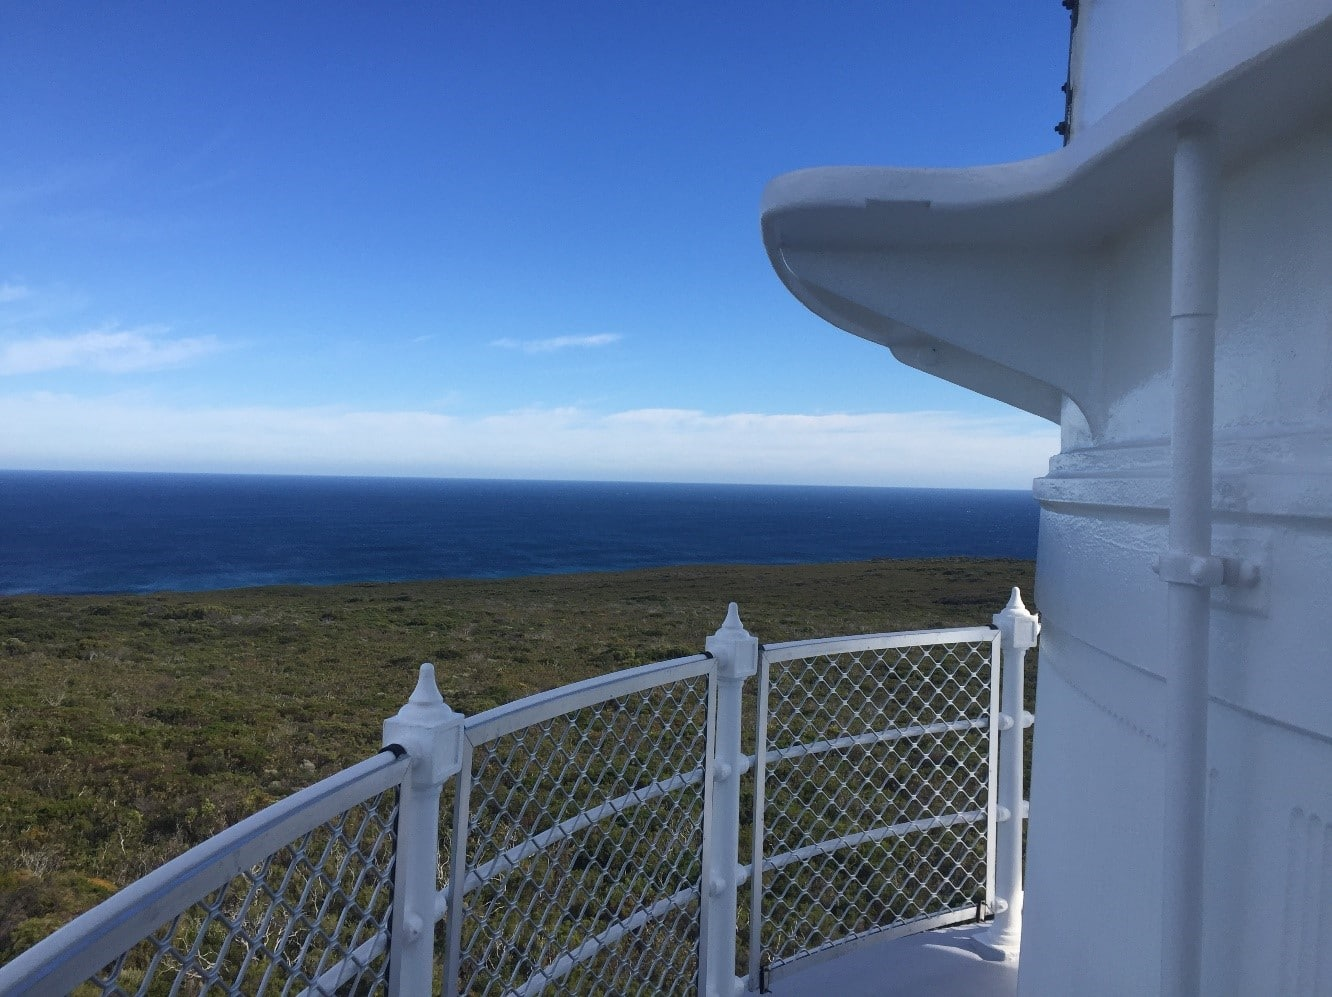 Protecting and restoring an iconic WA lighthouse